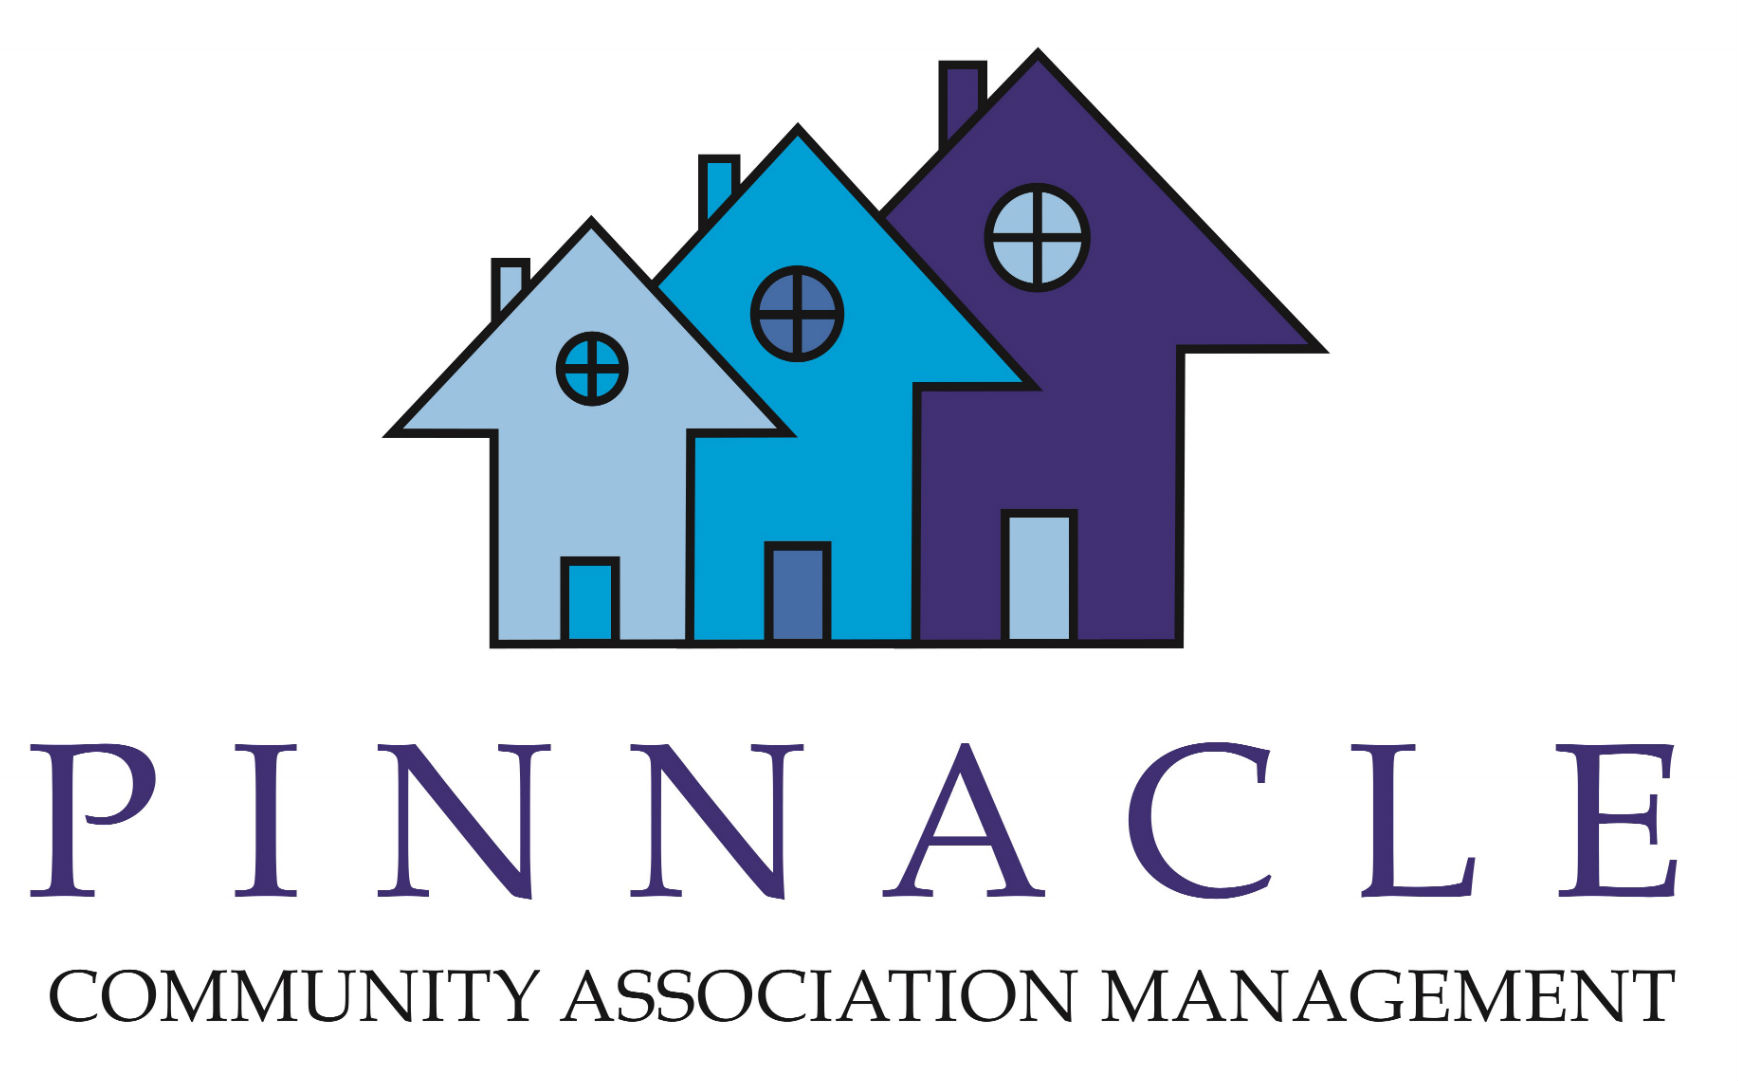 Pinnacle Community Association Management